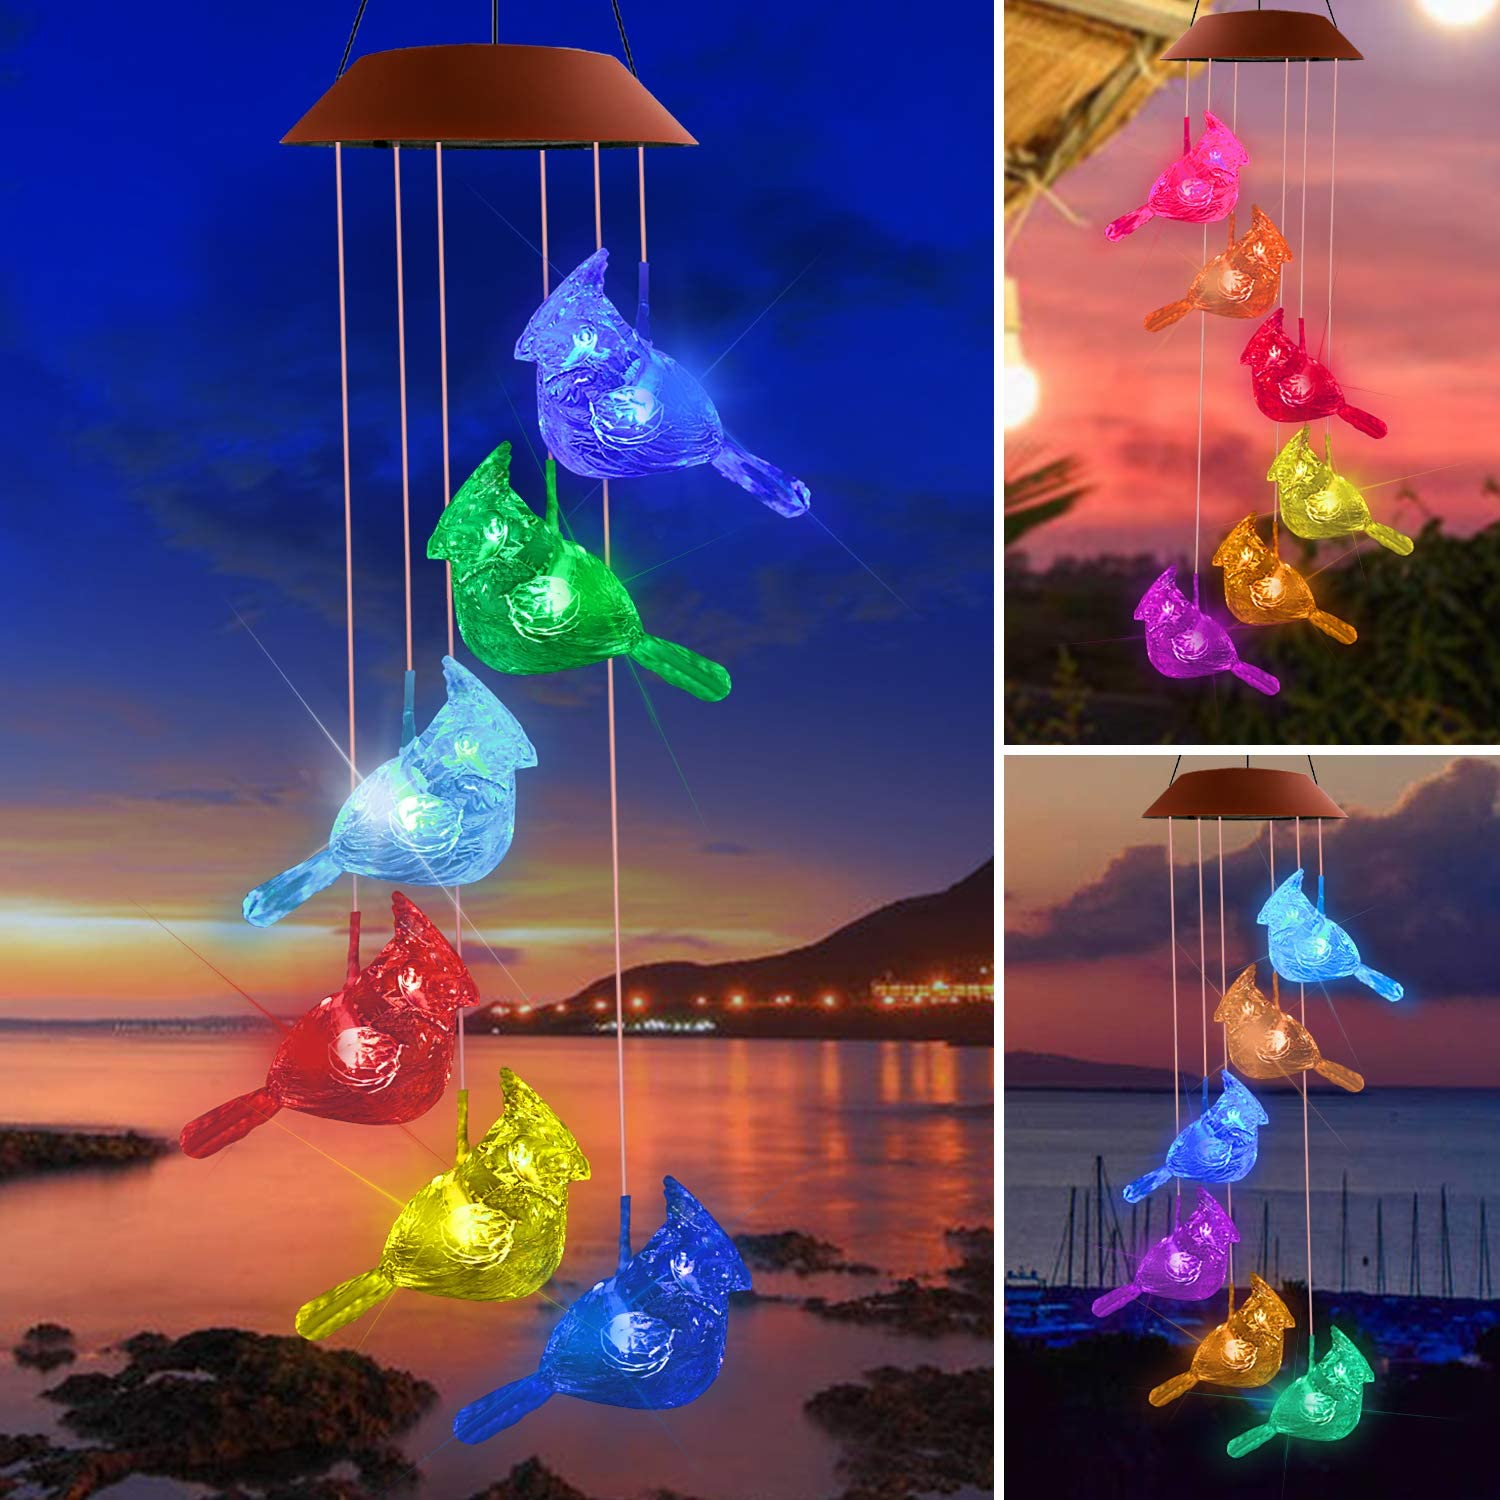 Lampelc Solar Wind Chimes, Cuckoo Wind Chime Outdoor, Color-Changing Outdoor Decoration LED Memorial Wind Chime Garden Decor, Yard Decor, Garden Gifts, Gifts for mom, Gifts for Grandma